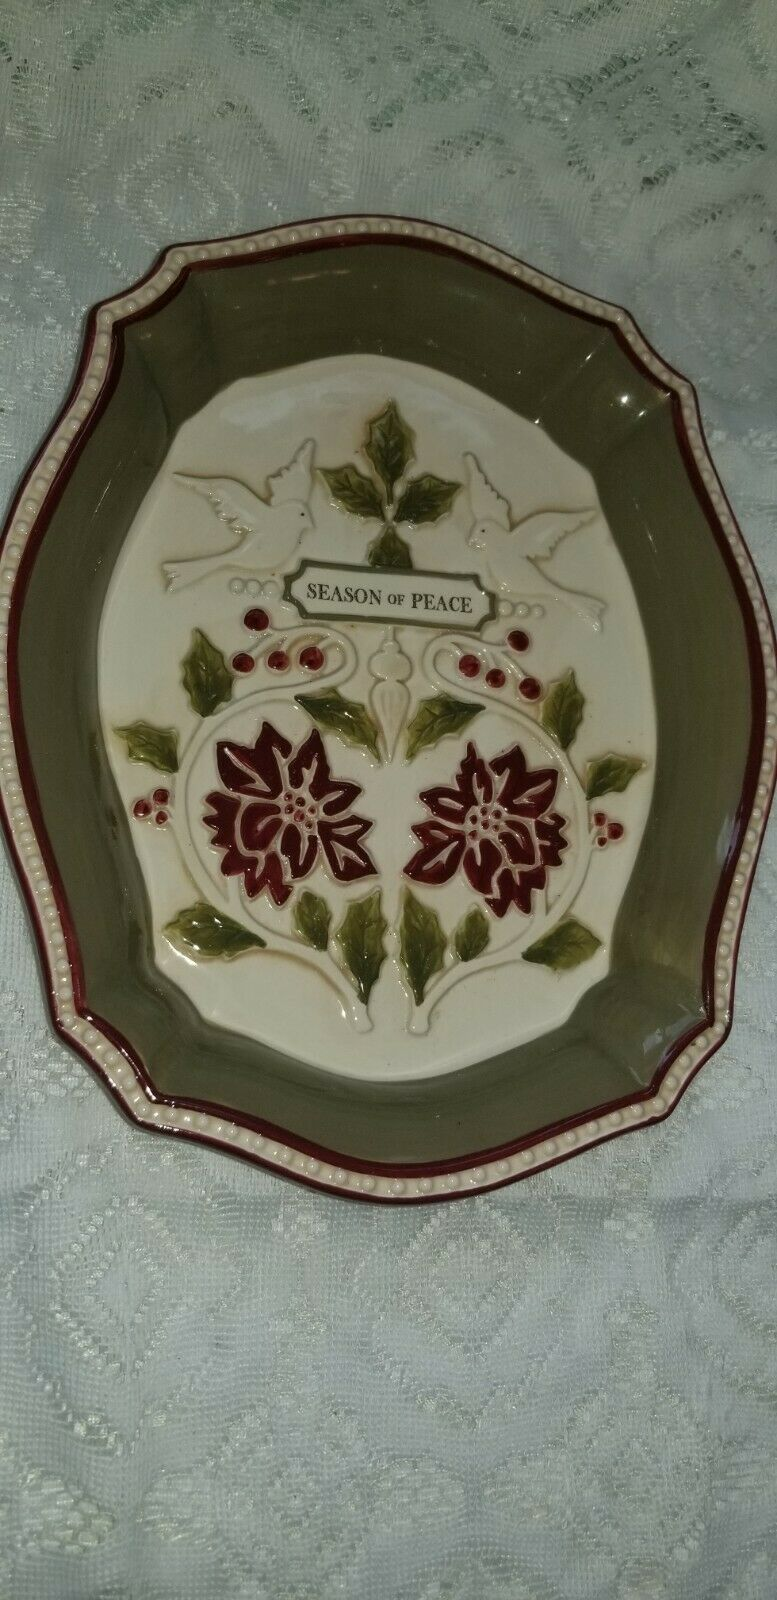 Primary image for Grasslands Road Christmas Seasons of Peace Serving Tray New